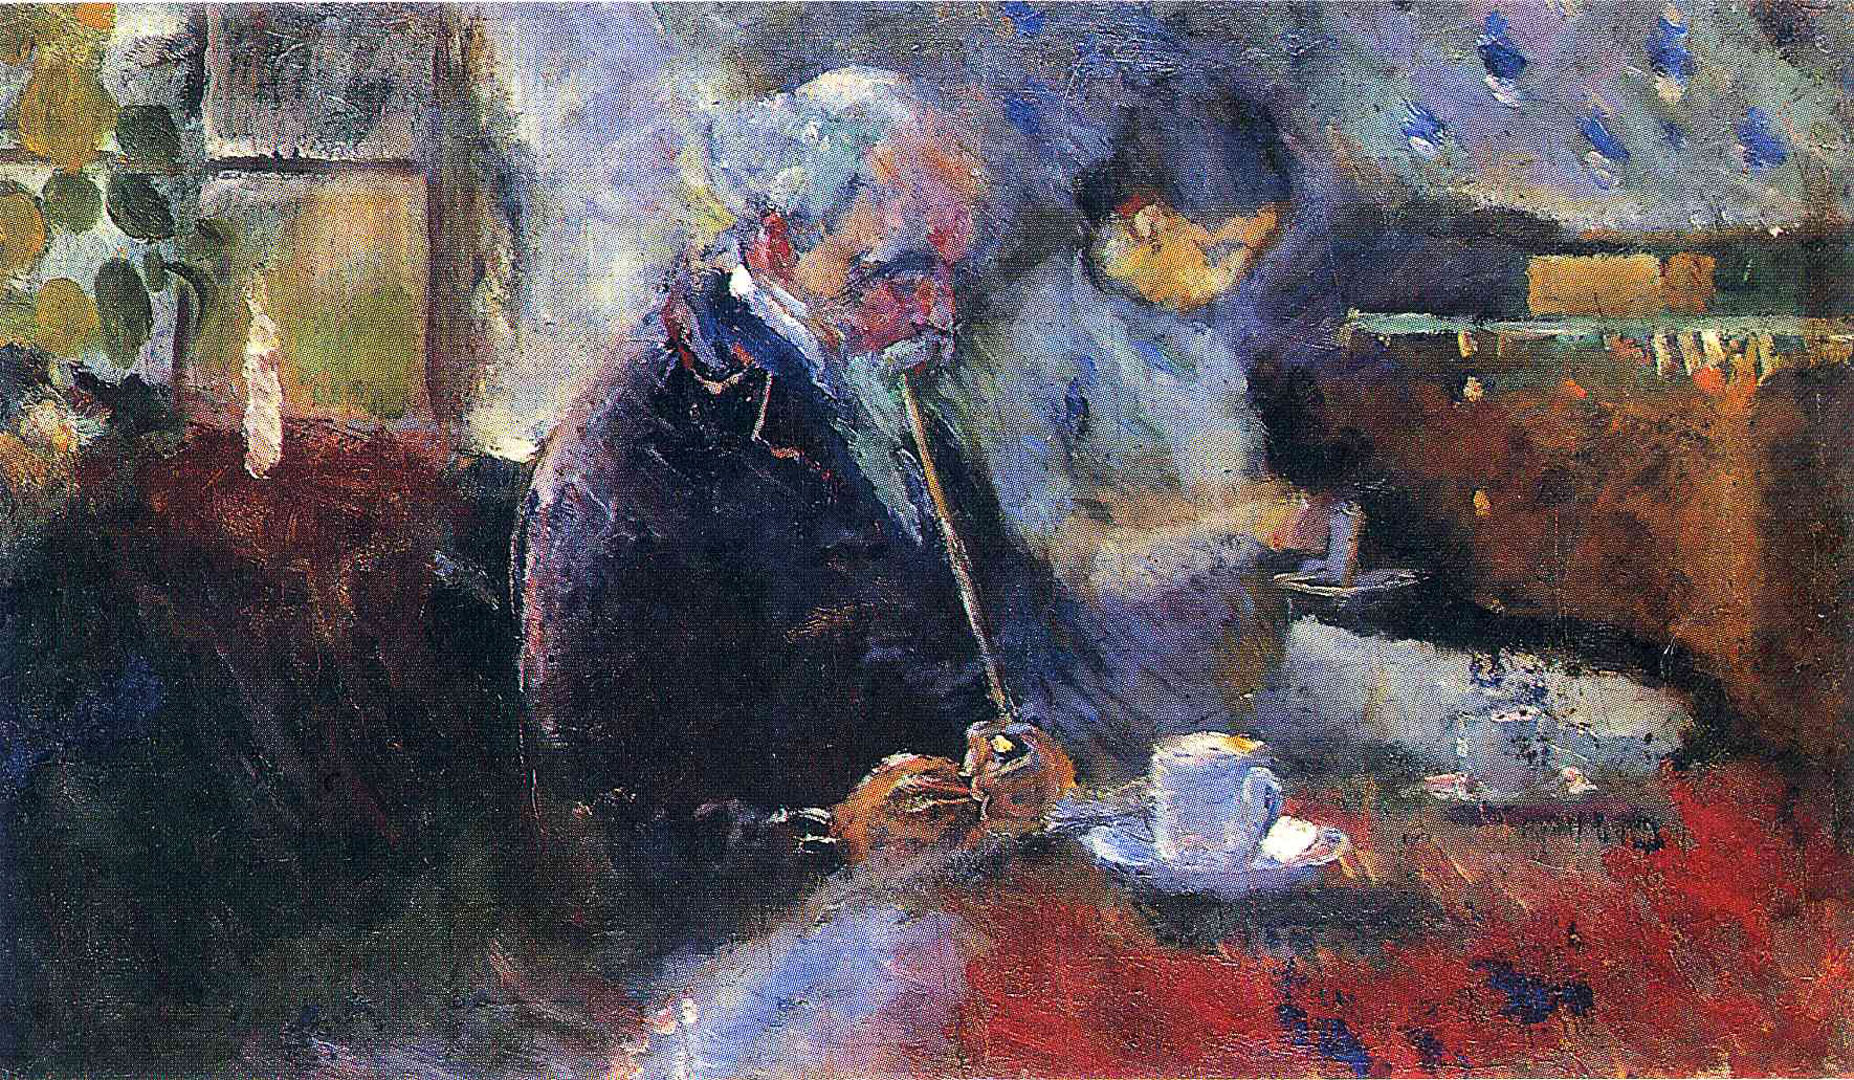 couple at the cafe edvard munch wallpaper image